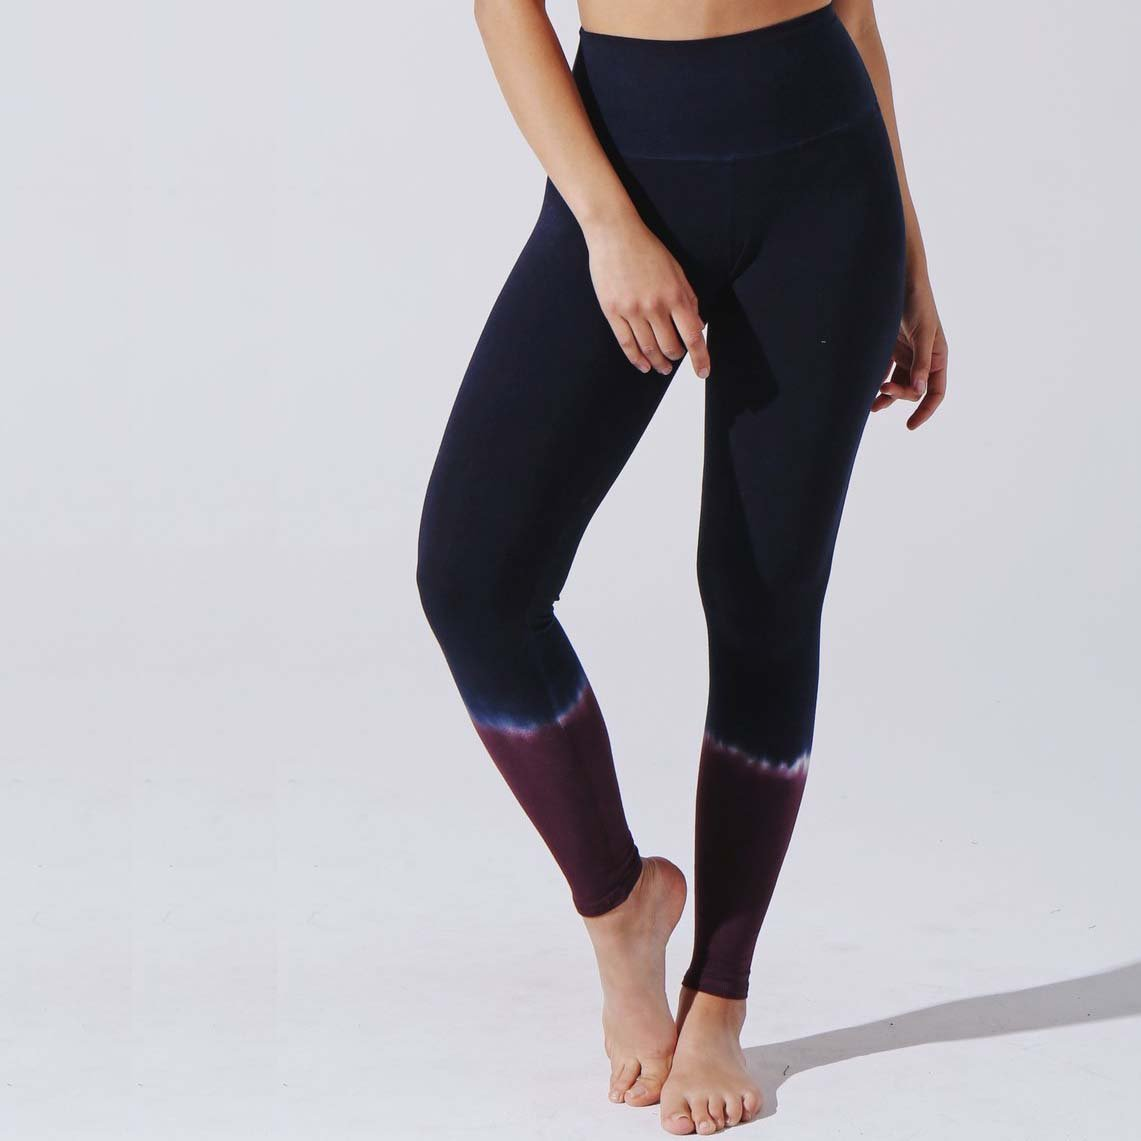 Sunset Leggings - Omber Dusk